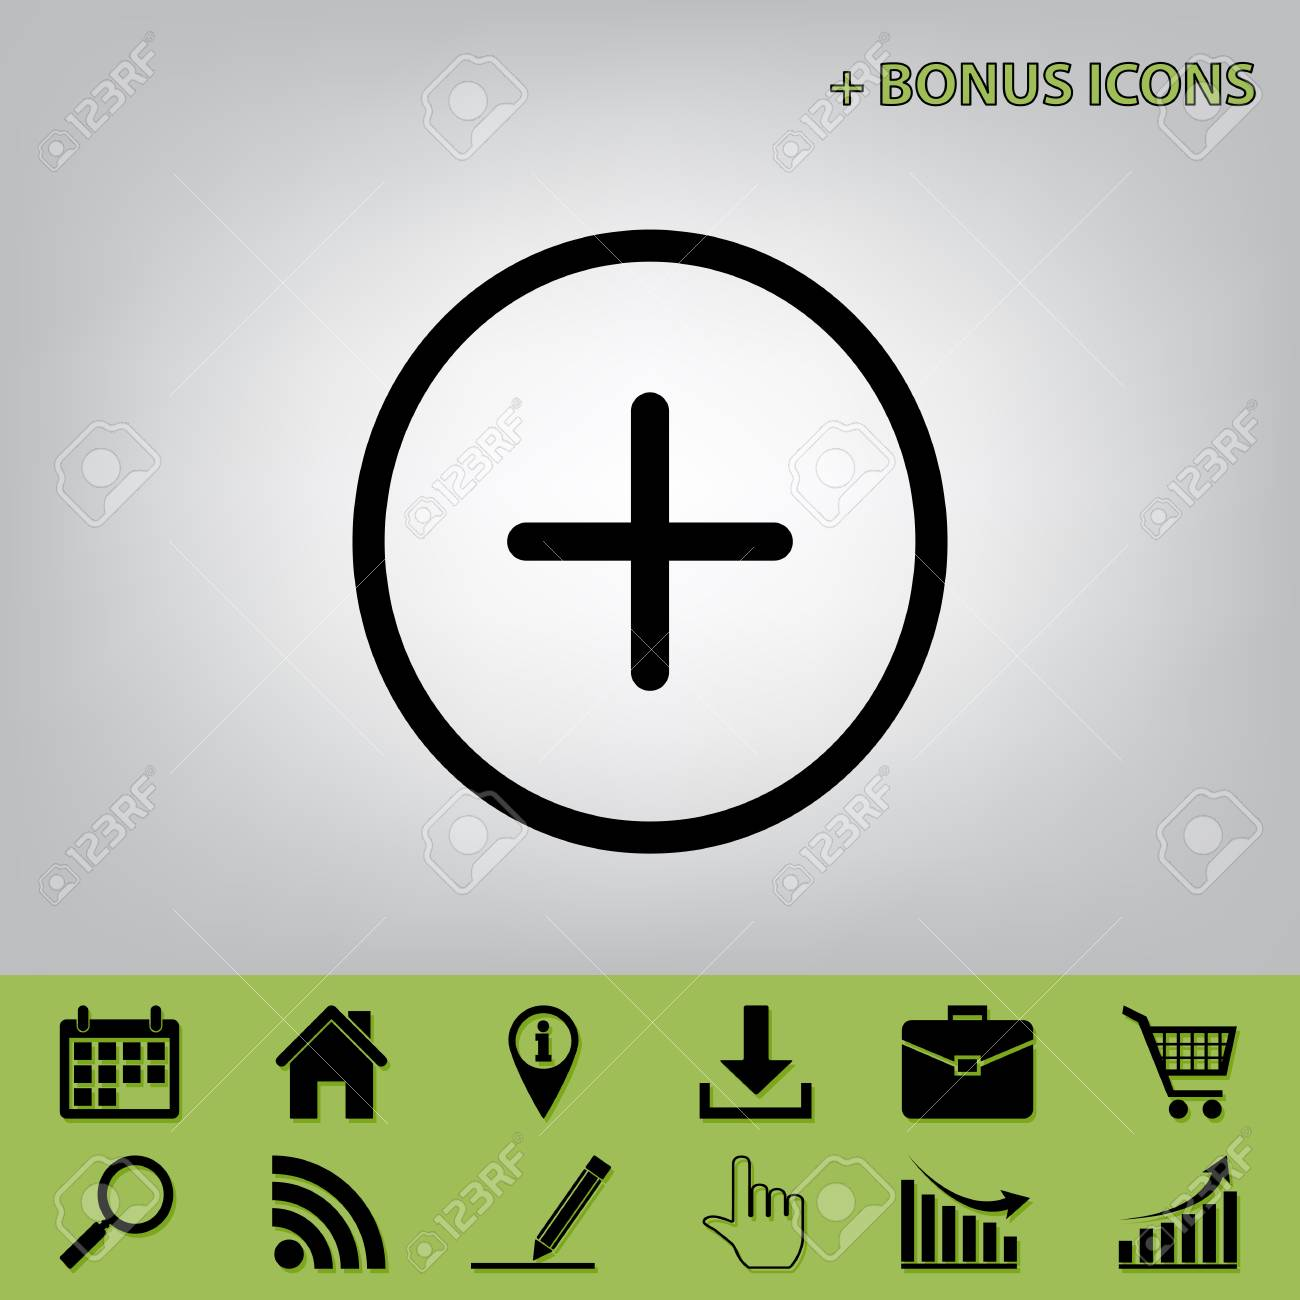 Positive Symbol Plus Sign Vector Black Icon At Gray Background